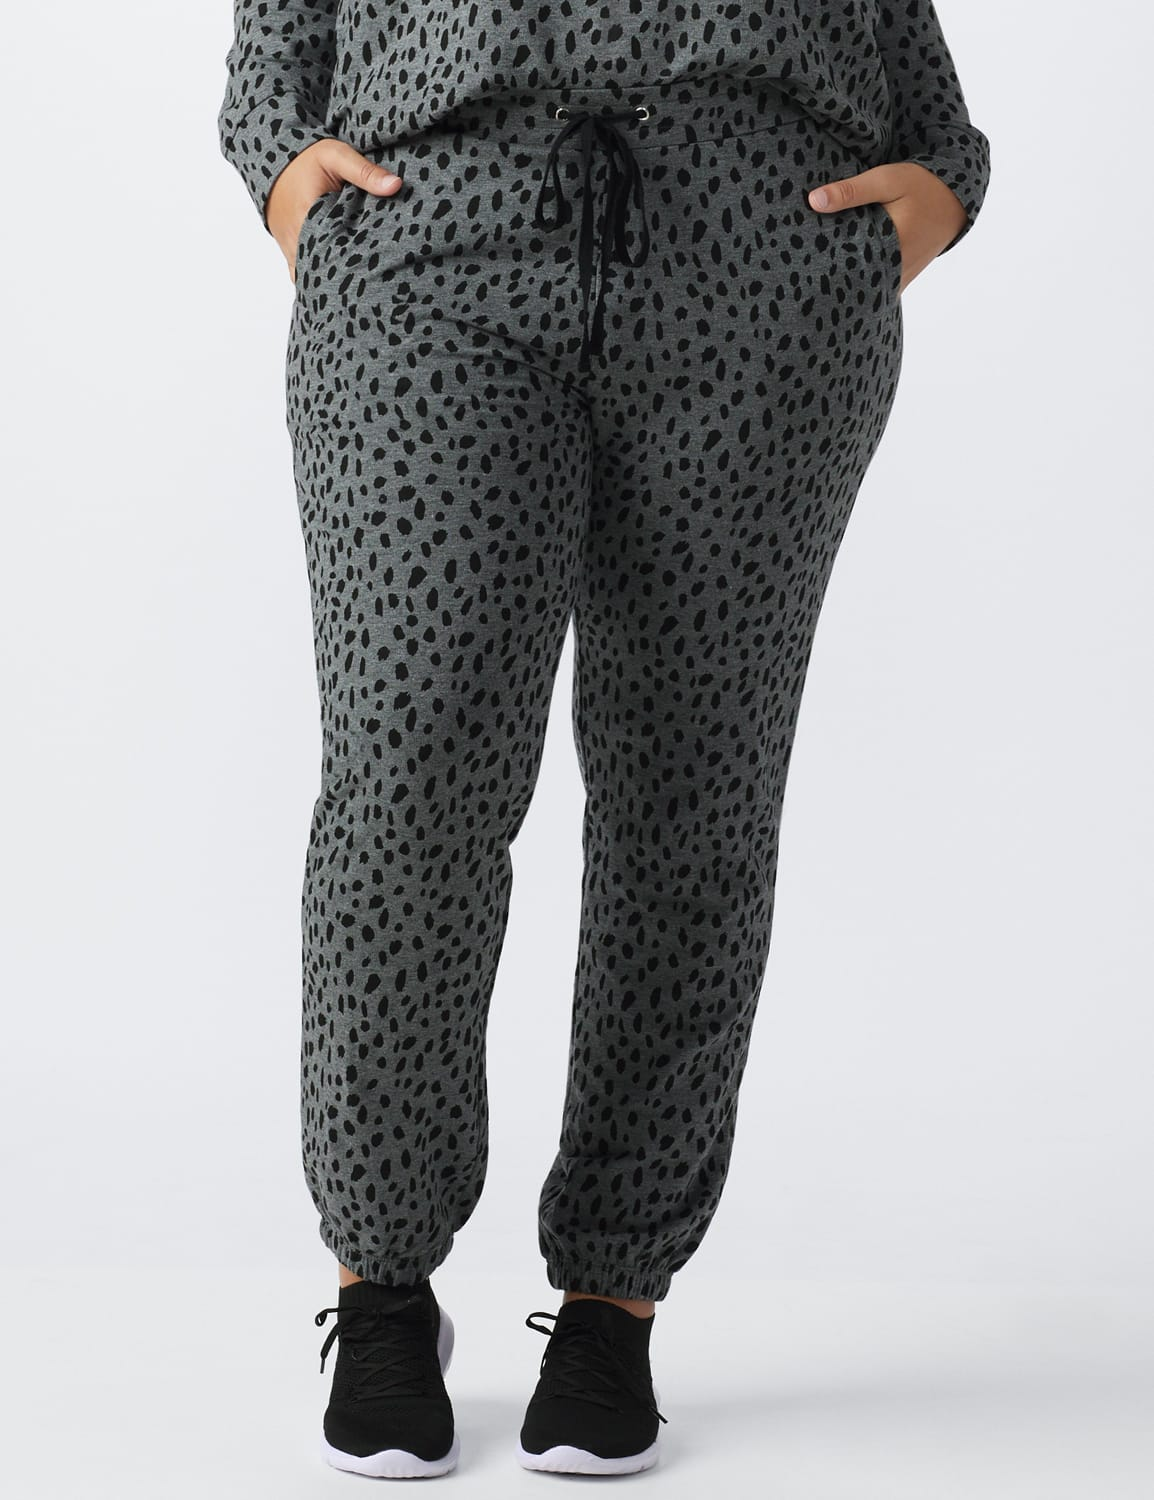 Animal French Terry Knit Jogger - Plus - Gray / Black print - Front